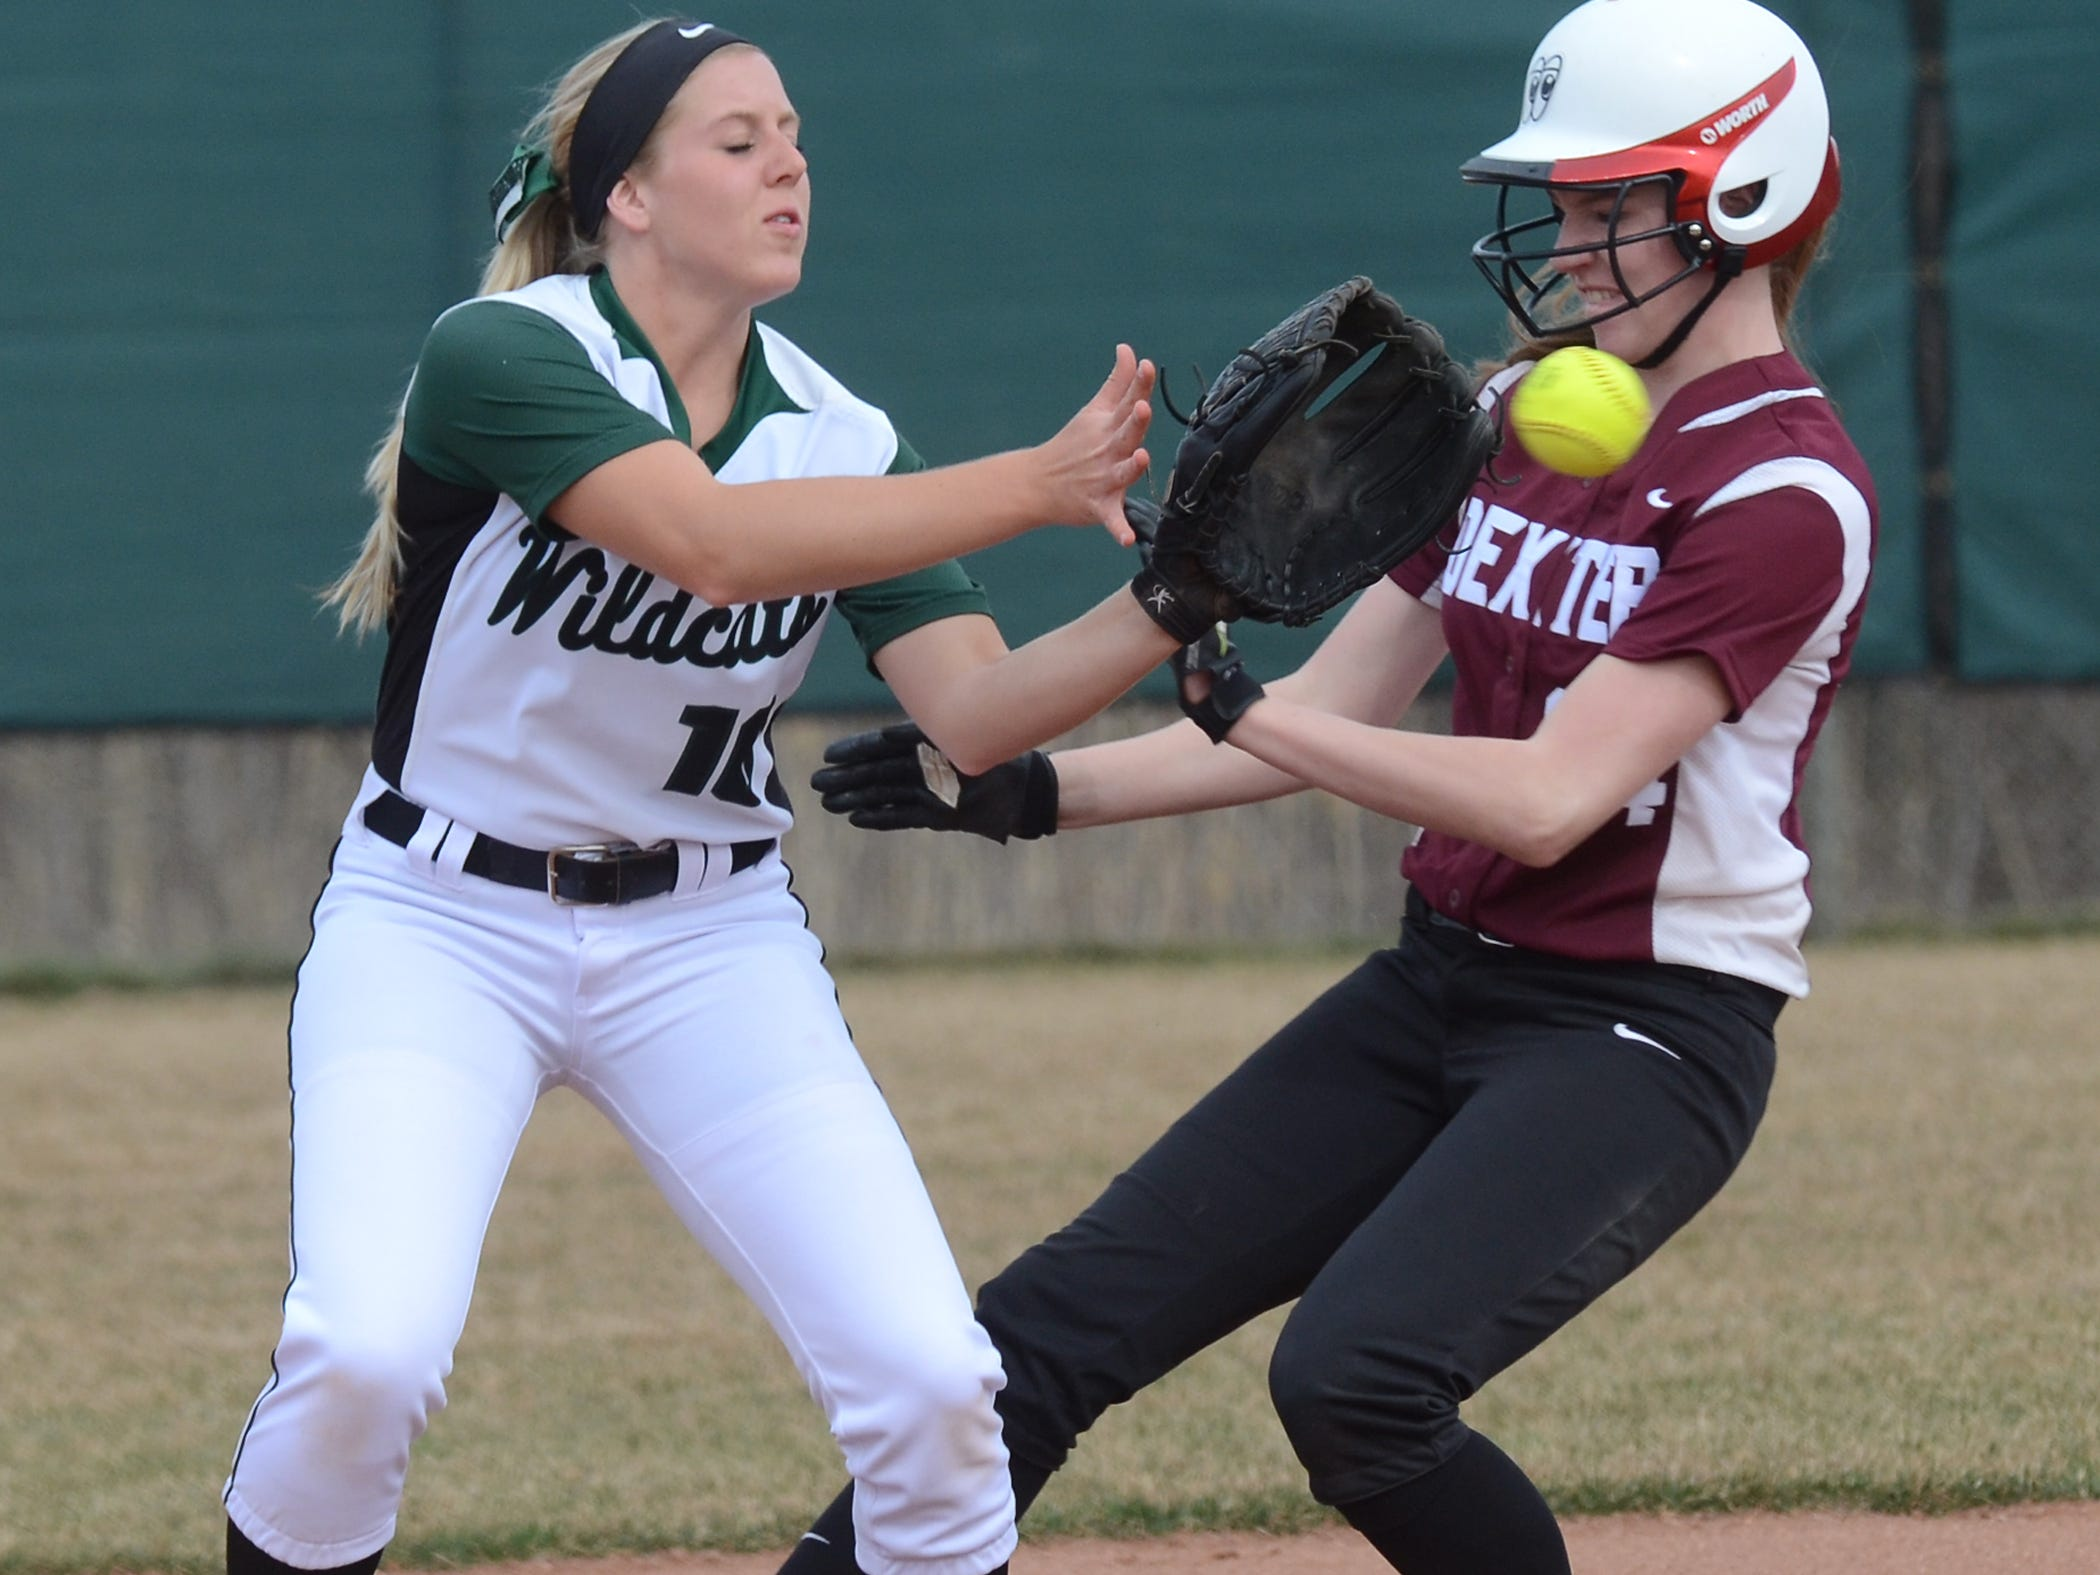 Novi's Jenna Lowney (left) takes the throw in time to get the force-out in a victory over Dexter.